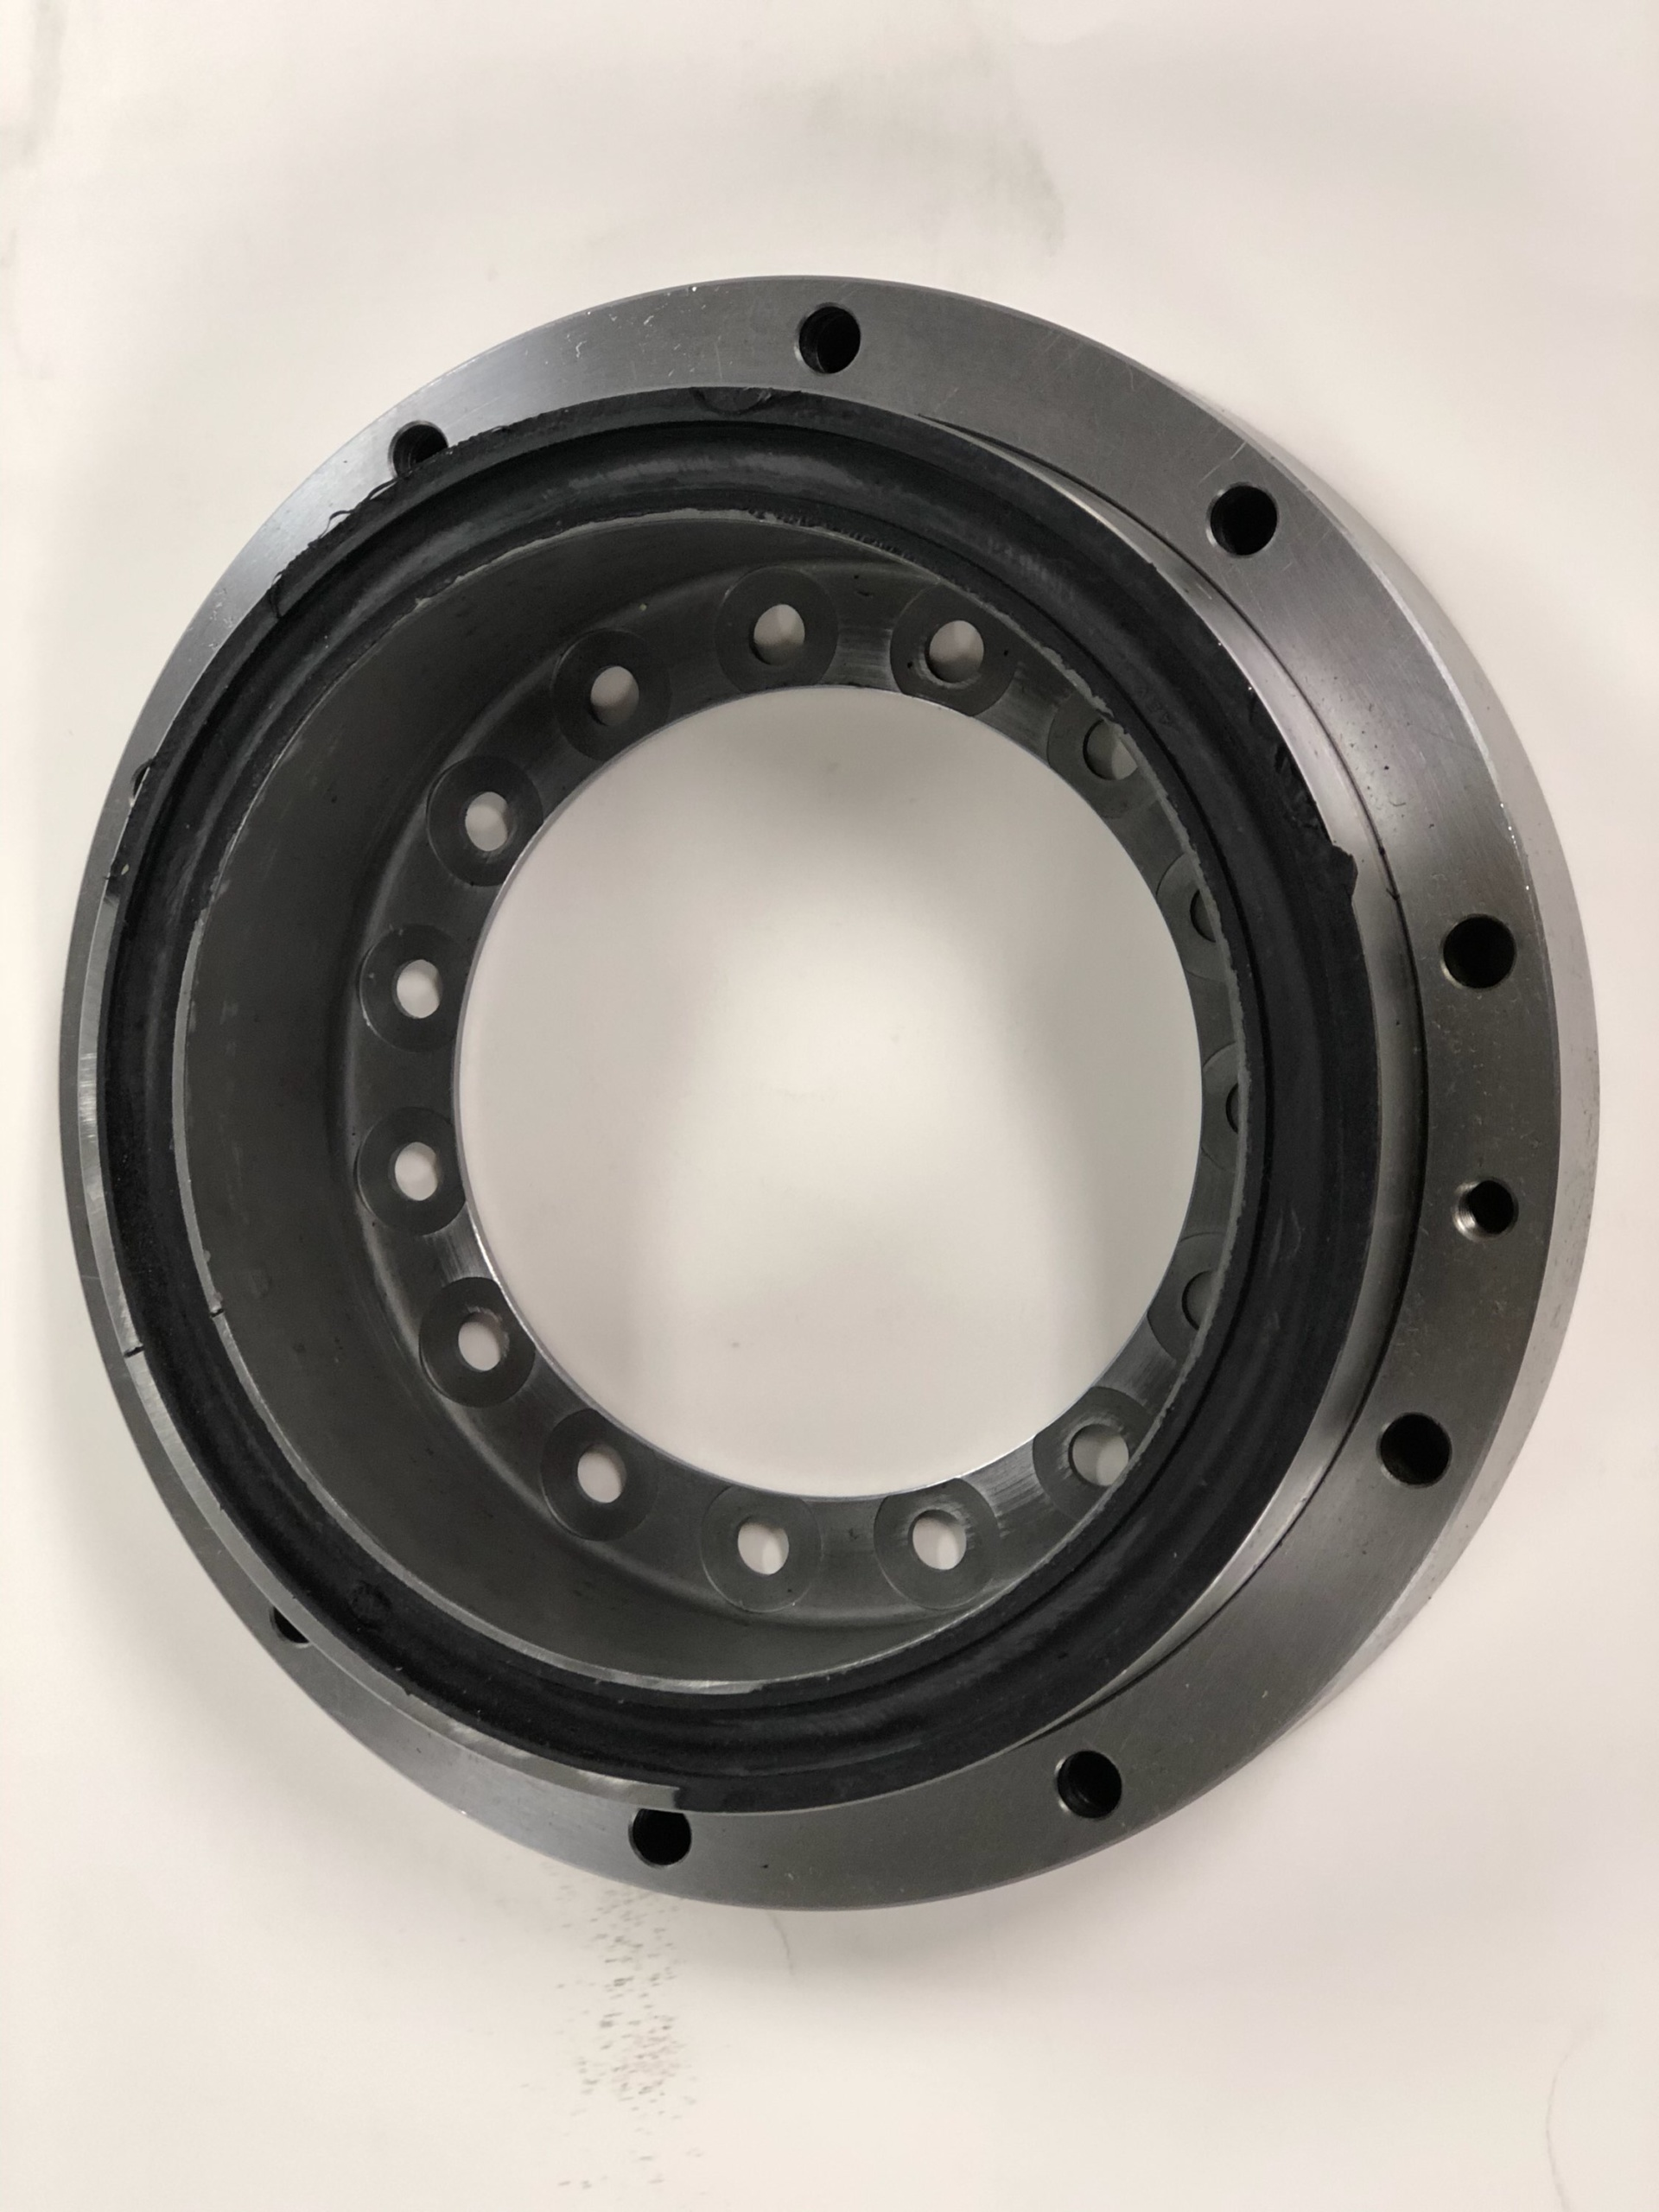 114x1218 Bnd Coupling for 7FDL Engine